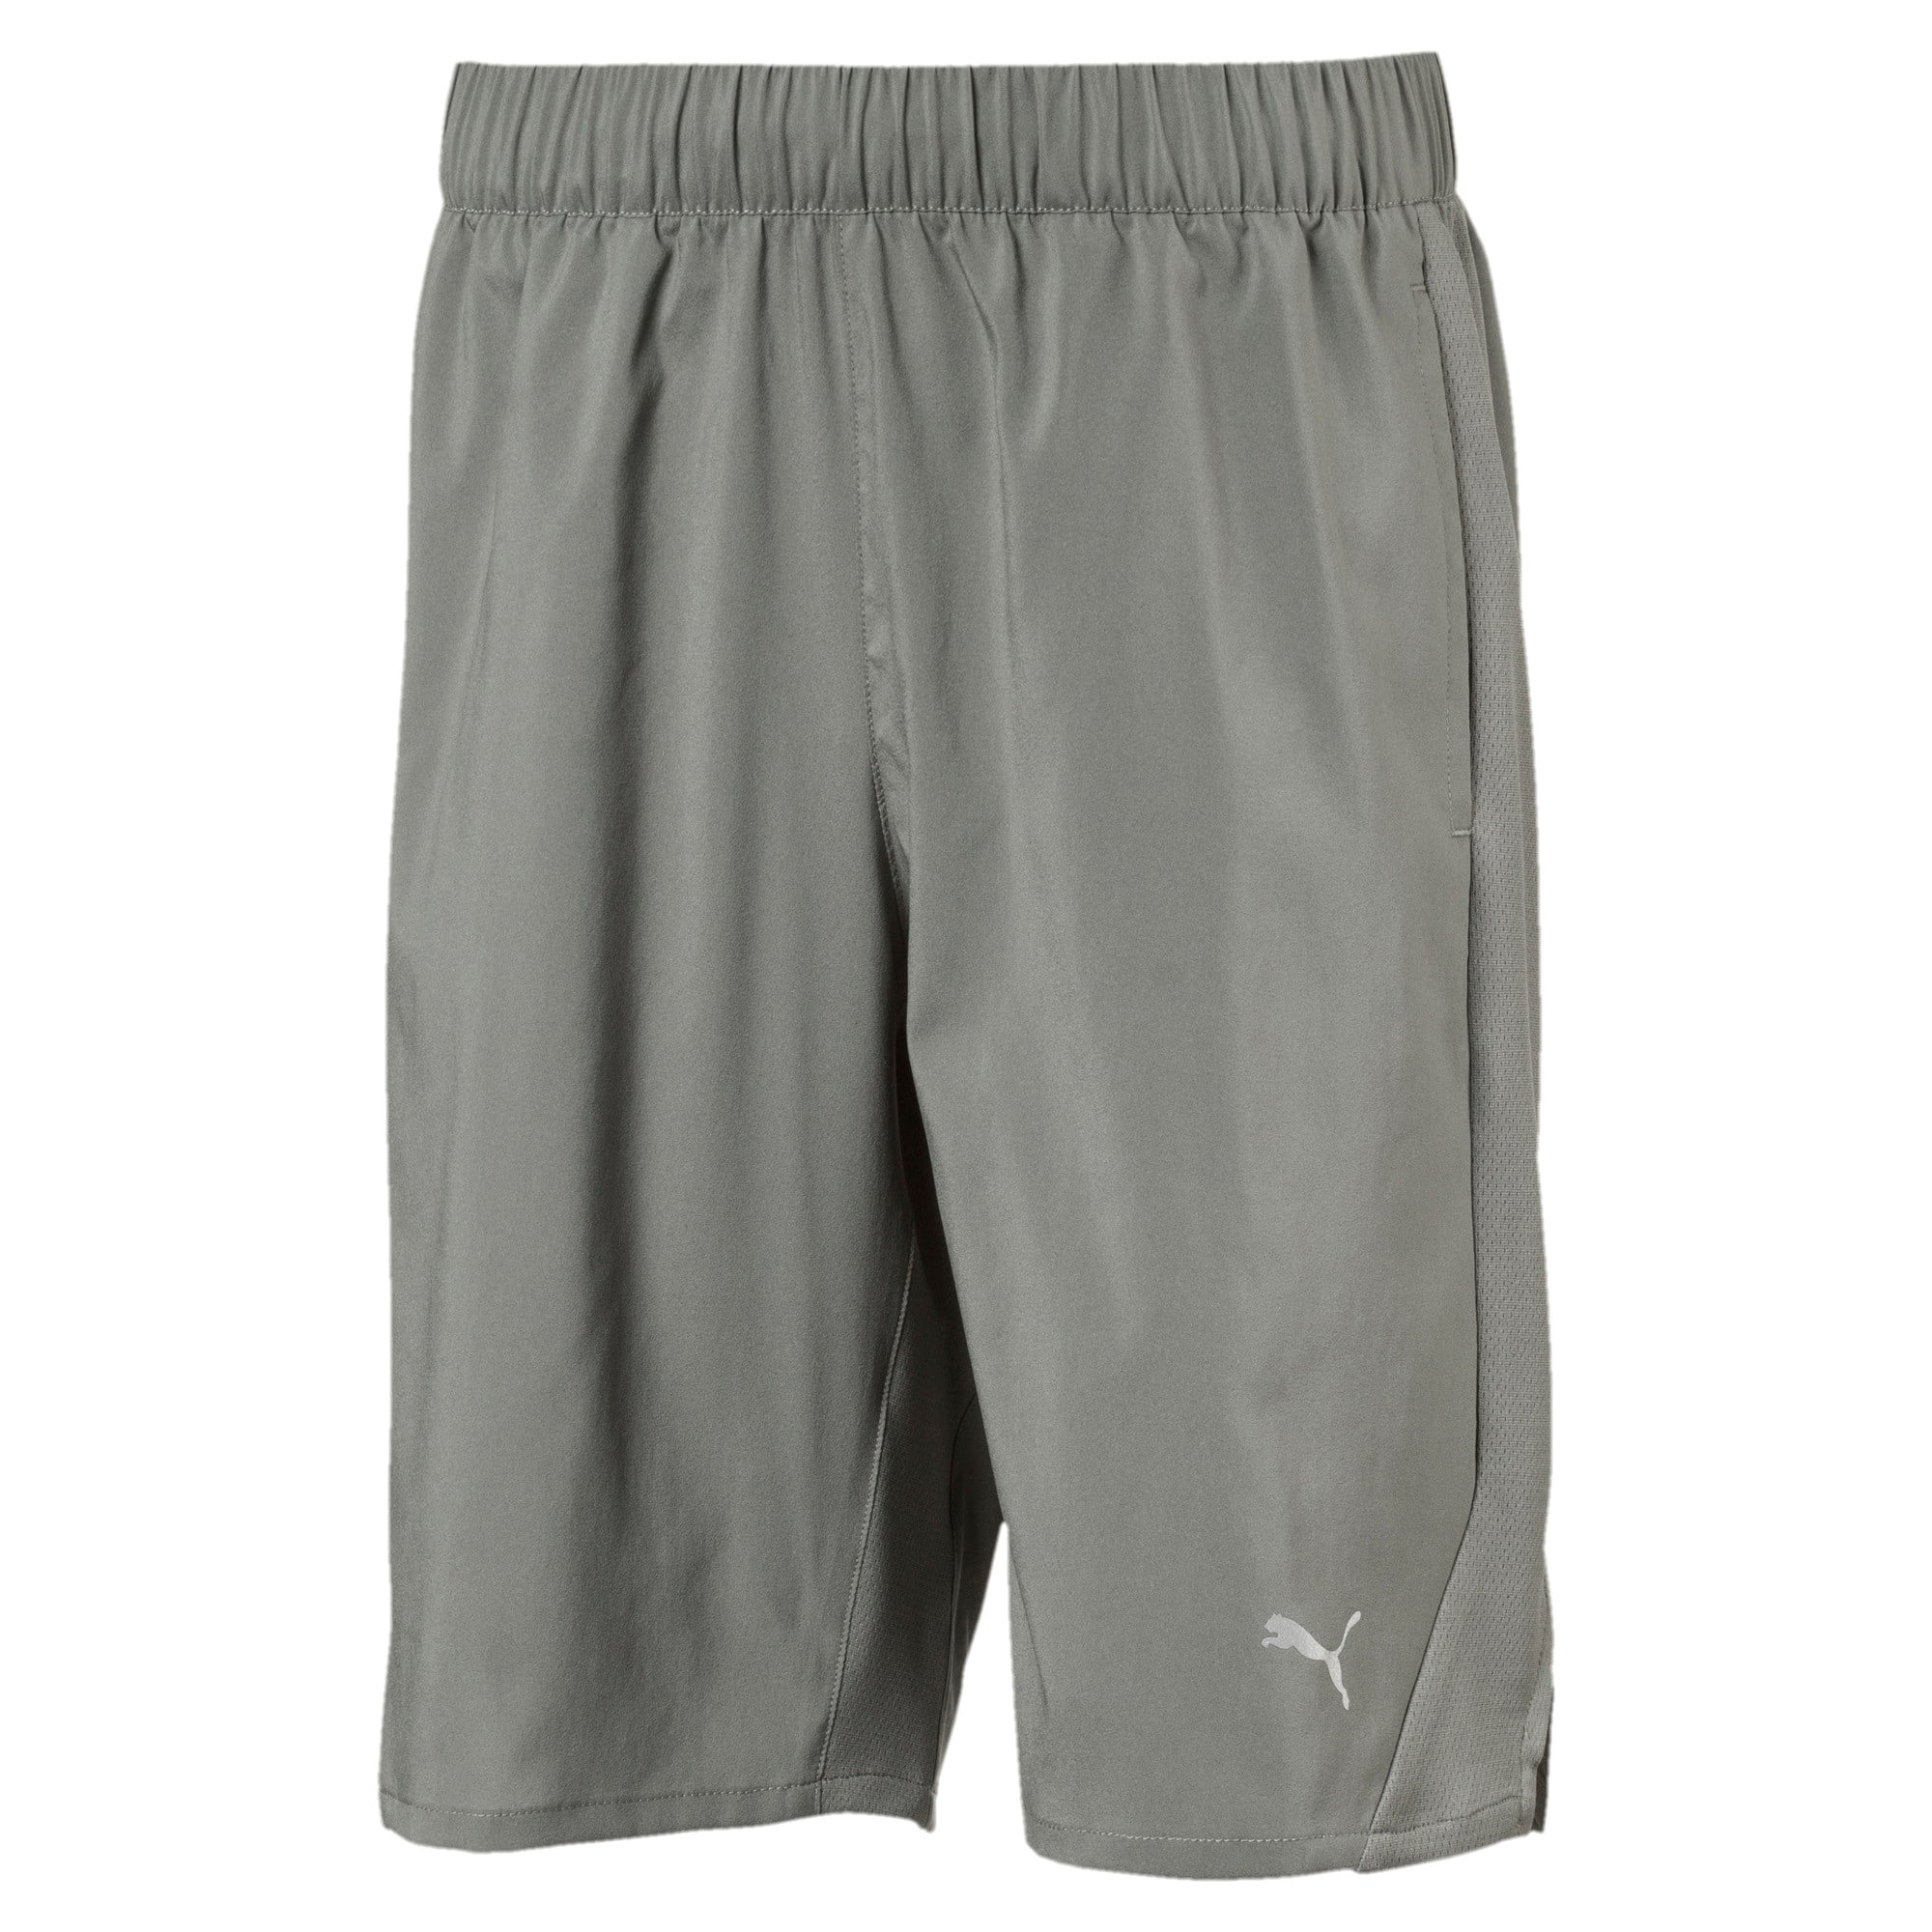 Boys' Gym Woven Shorts, Castor Gray, large-IND